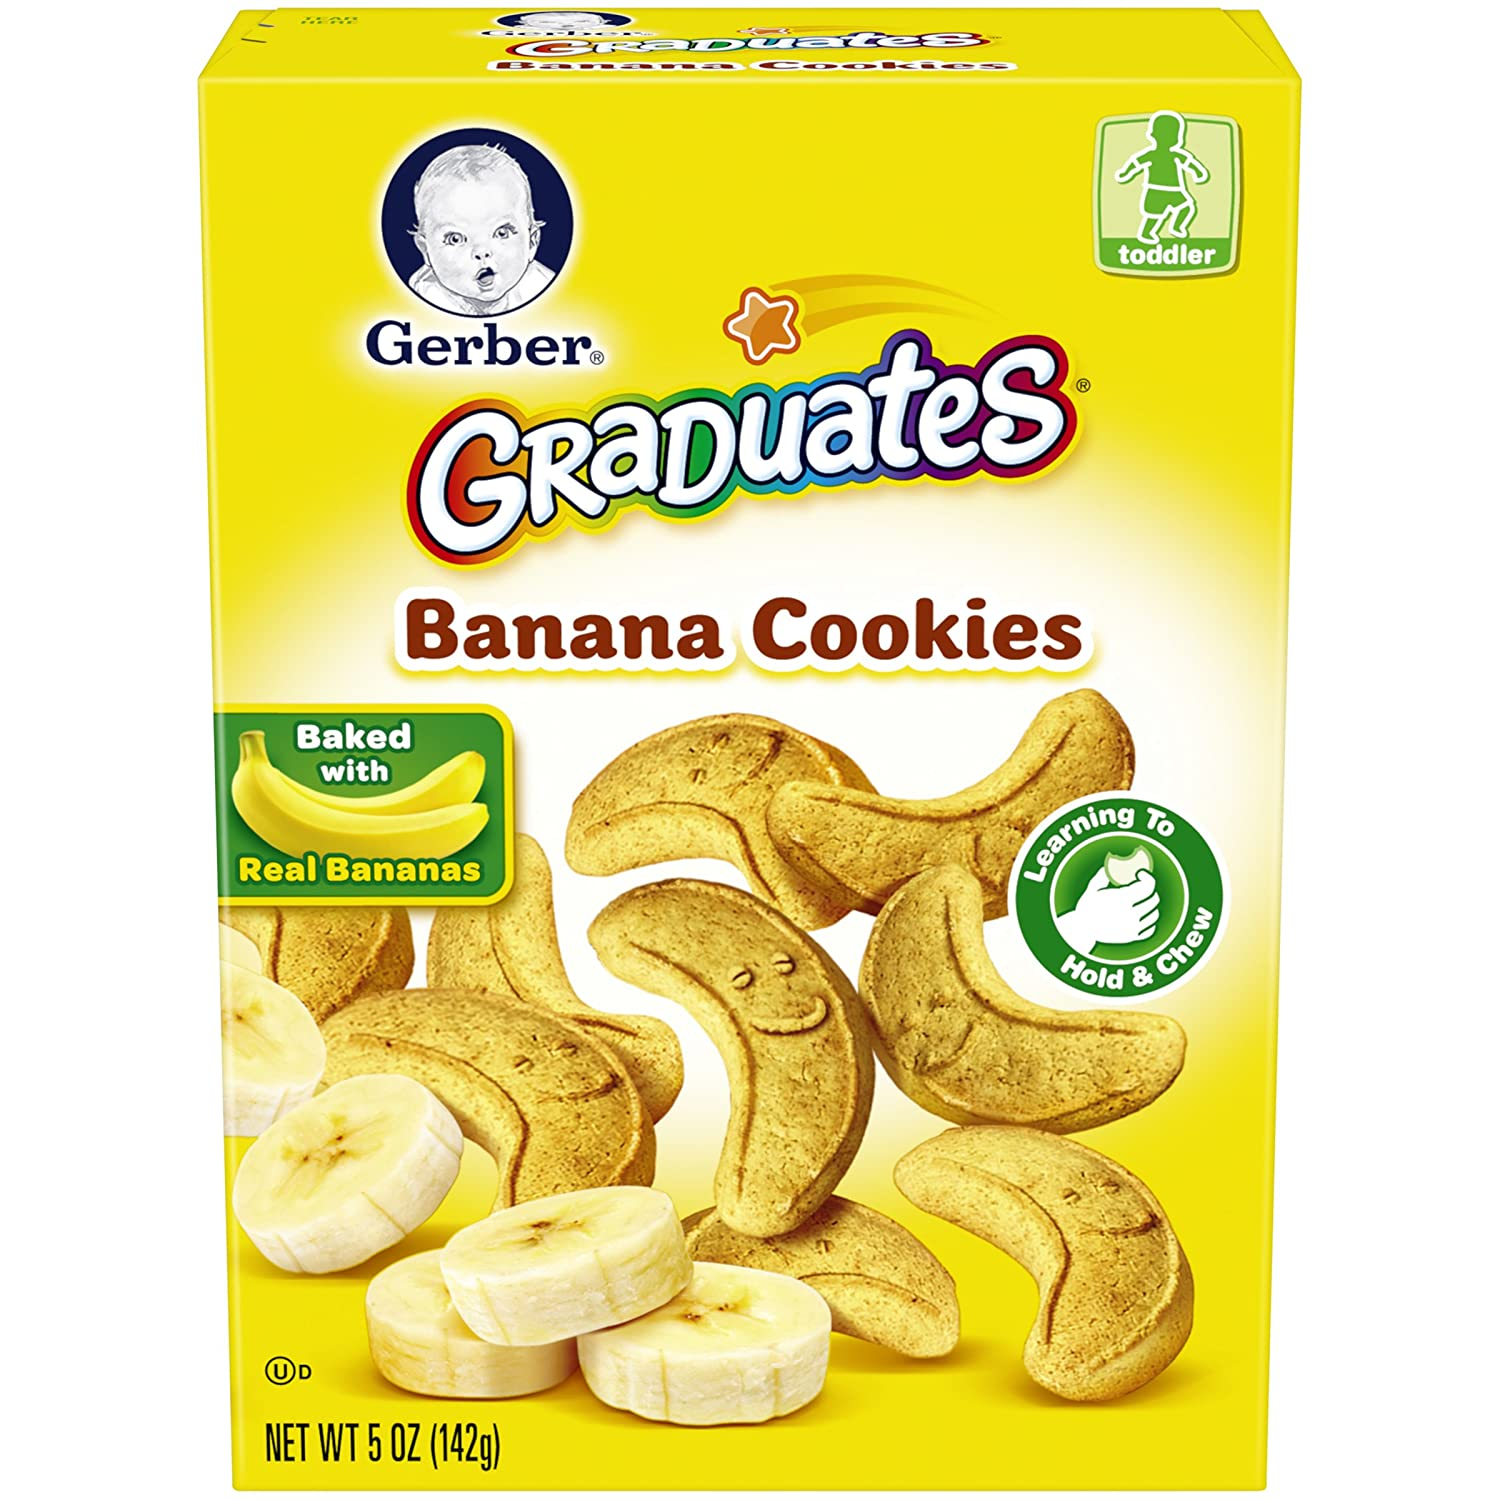 Gerber Graduates Cookies, Banana Cookies, 5-Ounce Boxes (Pack of 12) 12125618